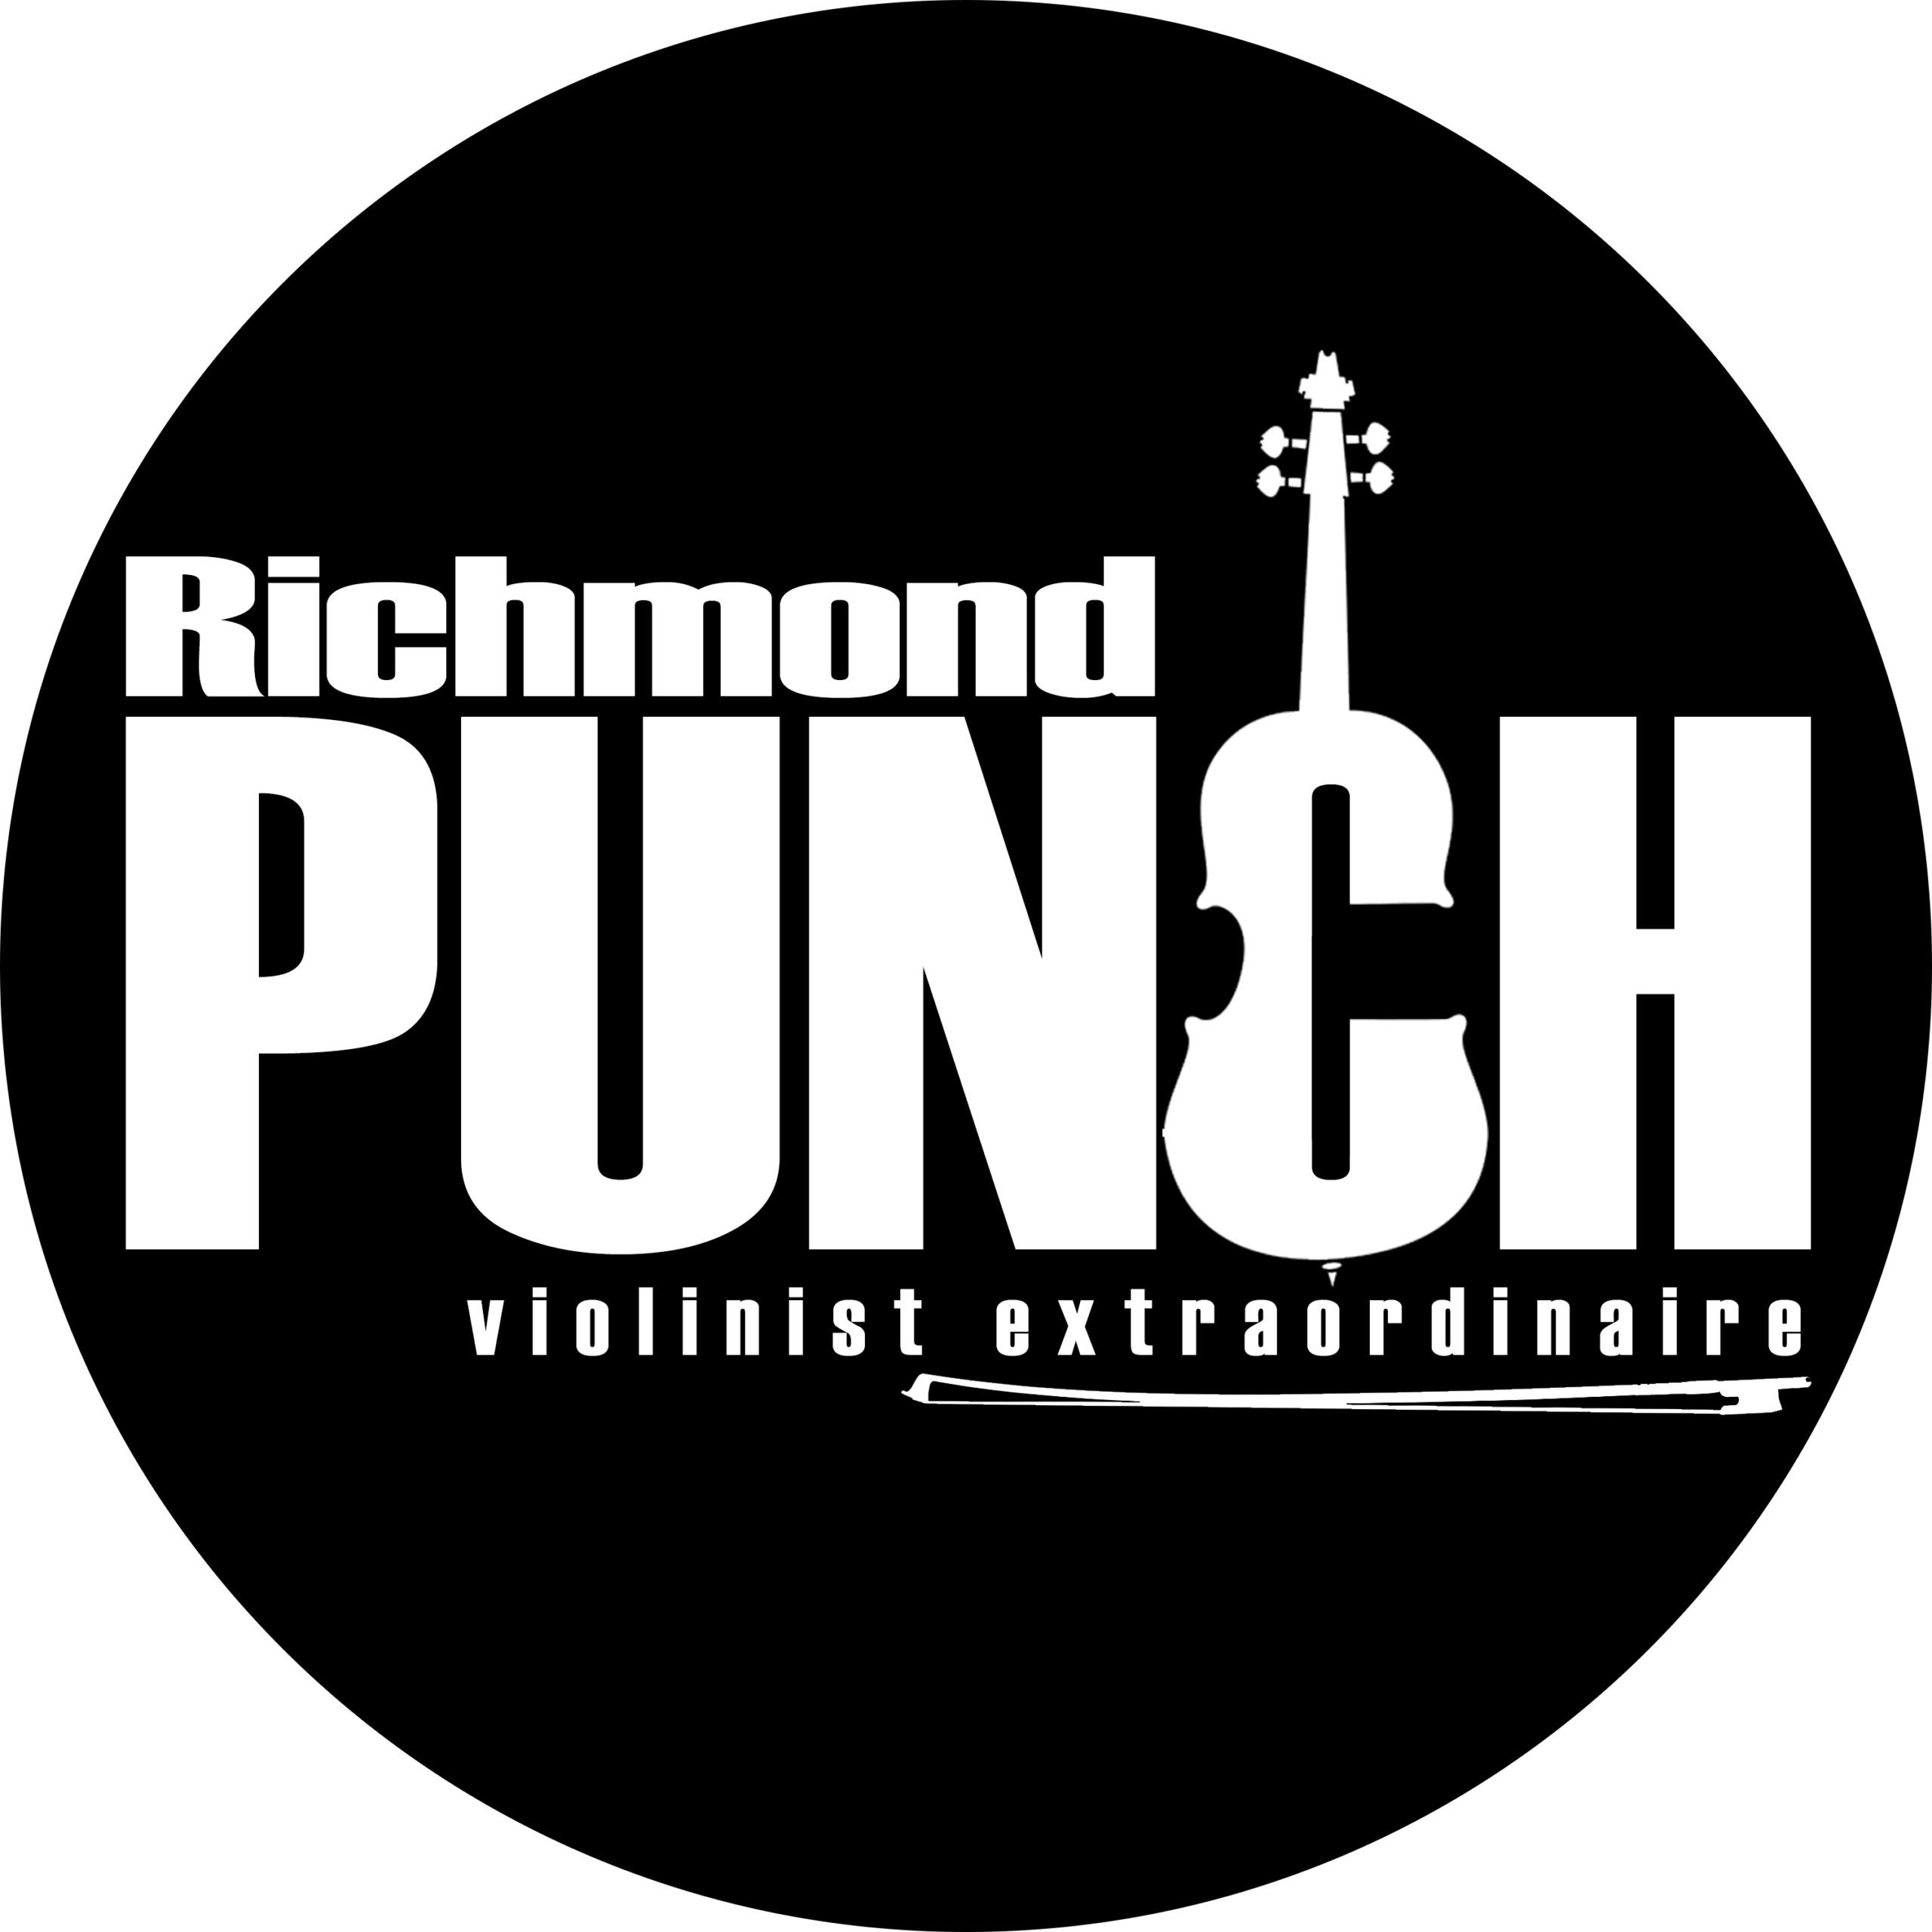 RICHMOND PUNCH